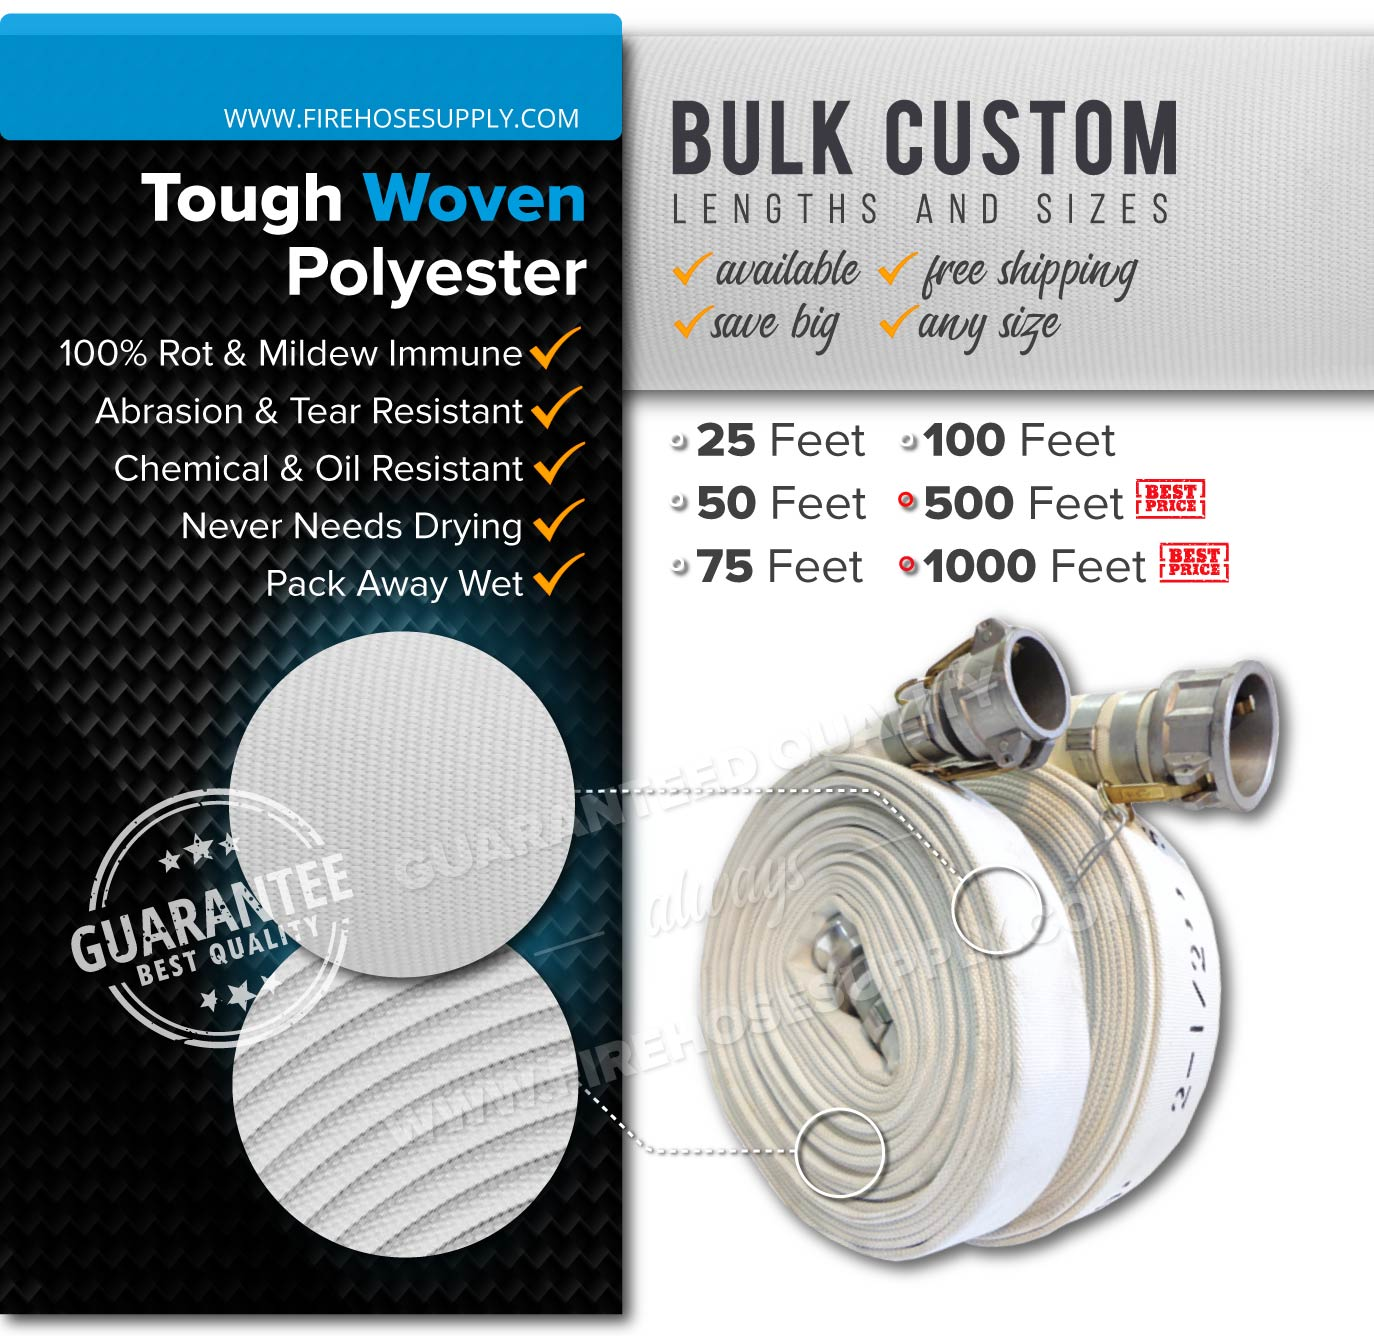 1 inch camlock quick connect hose polyester cotton materials bulk custom deals white